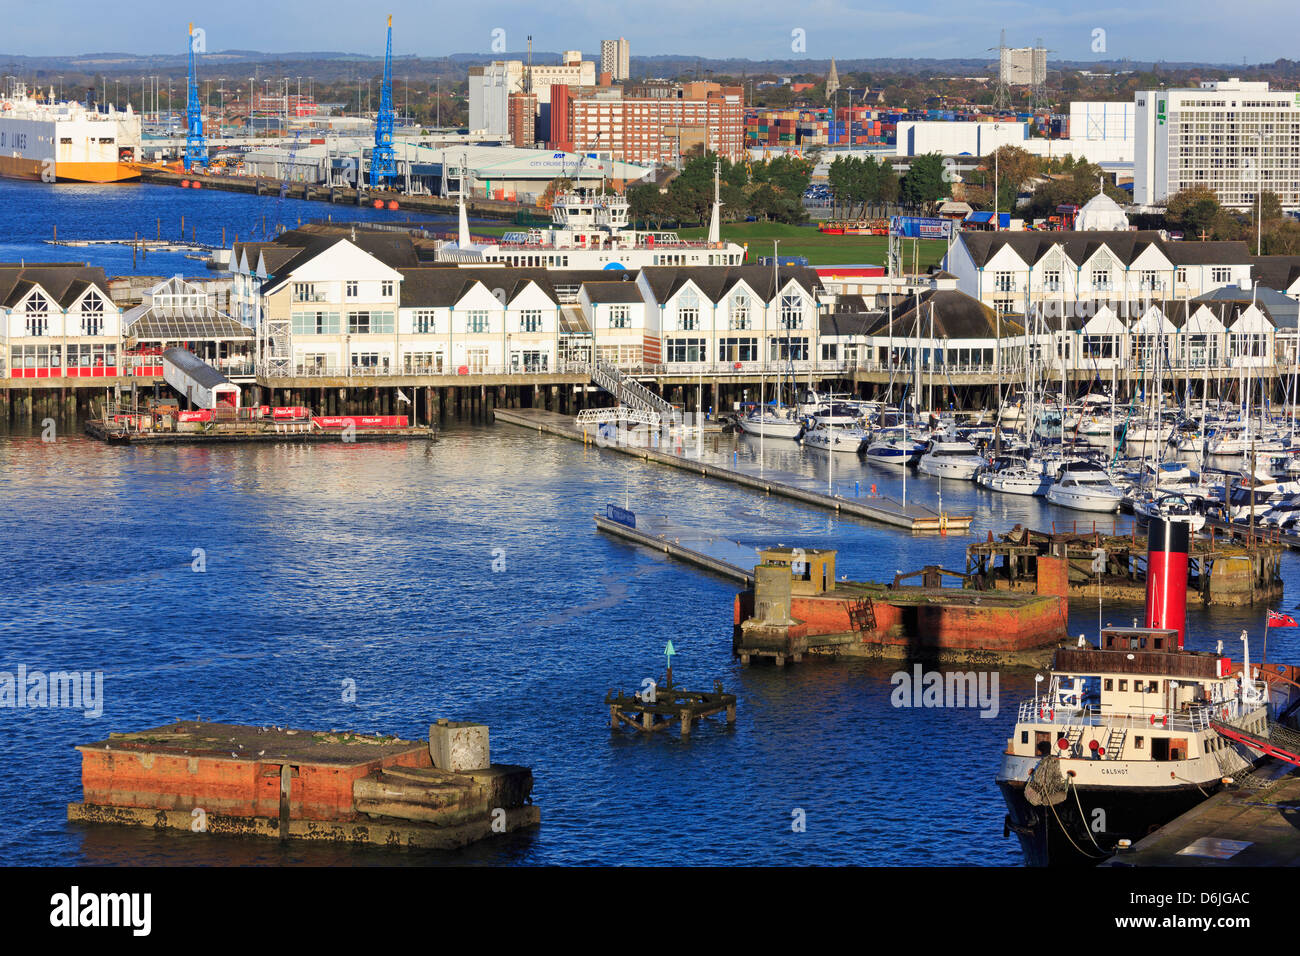 Town Quay in Southampton Port, Hampshire, England, United Kingdom, Europe - Stock Image